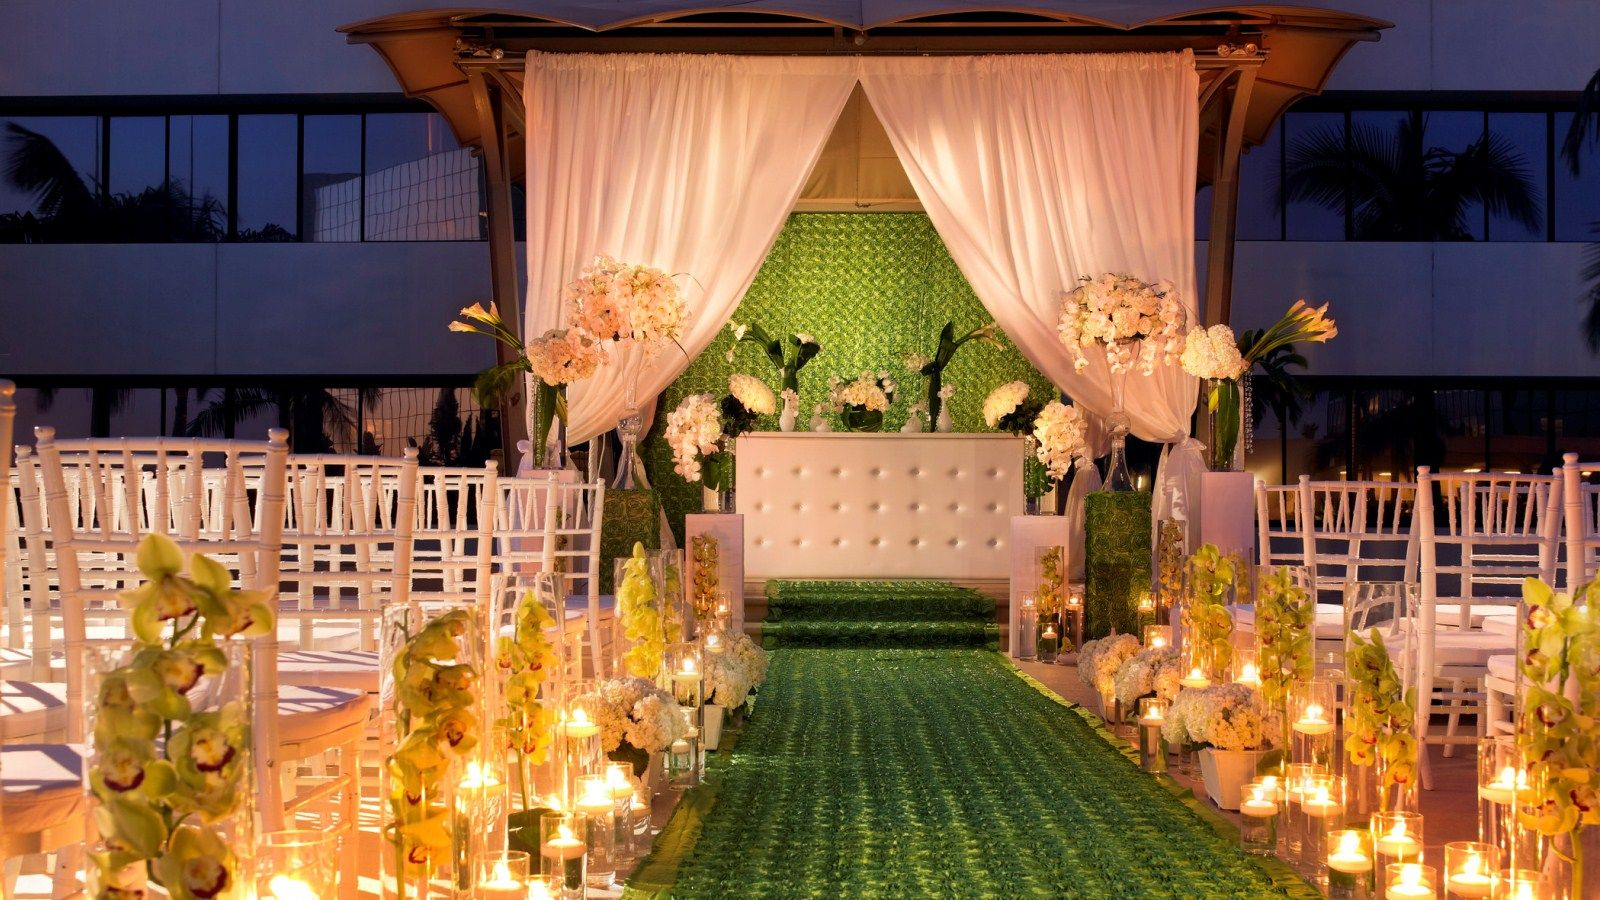 The Westin South Coast Plaza, Costa Mesa | Wedding Venue, Terrace Gazebo, outdoor ceremony, wedding ceremony, Orange County Wedding, evening ceremony, yellow and green, draping, chiavari chairs, wedding decor, #thewestinscp #twscp #westinweddings #southcoastplaza #thewestin